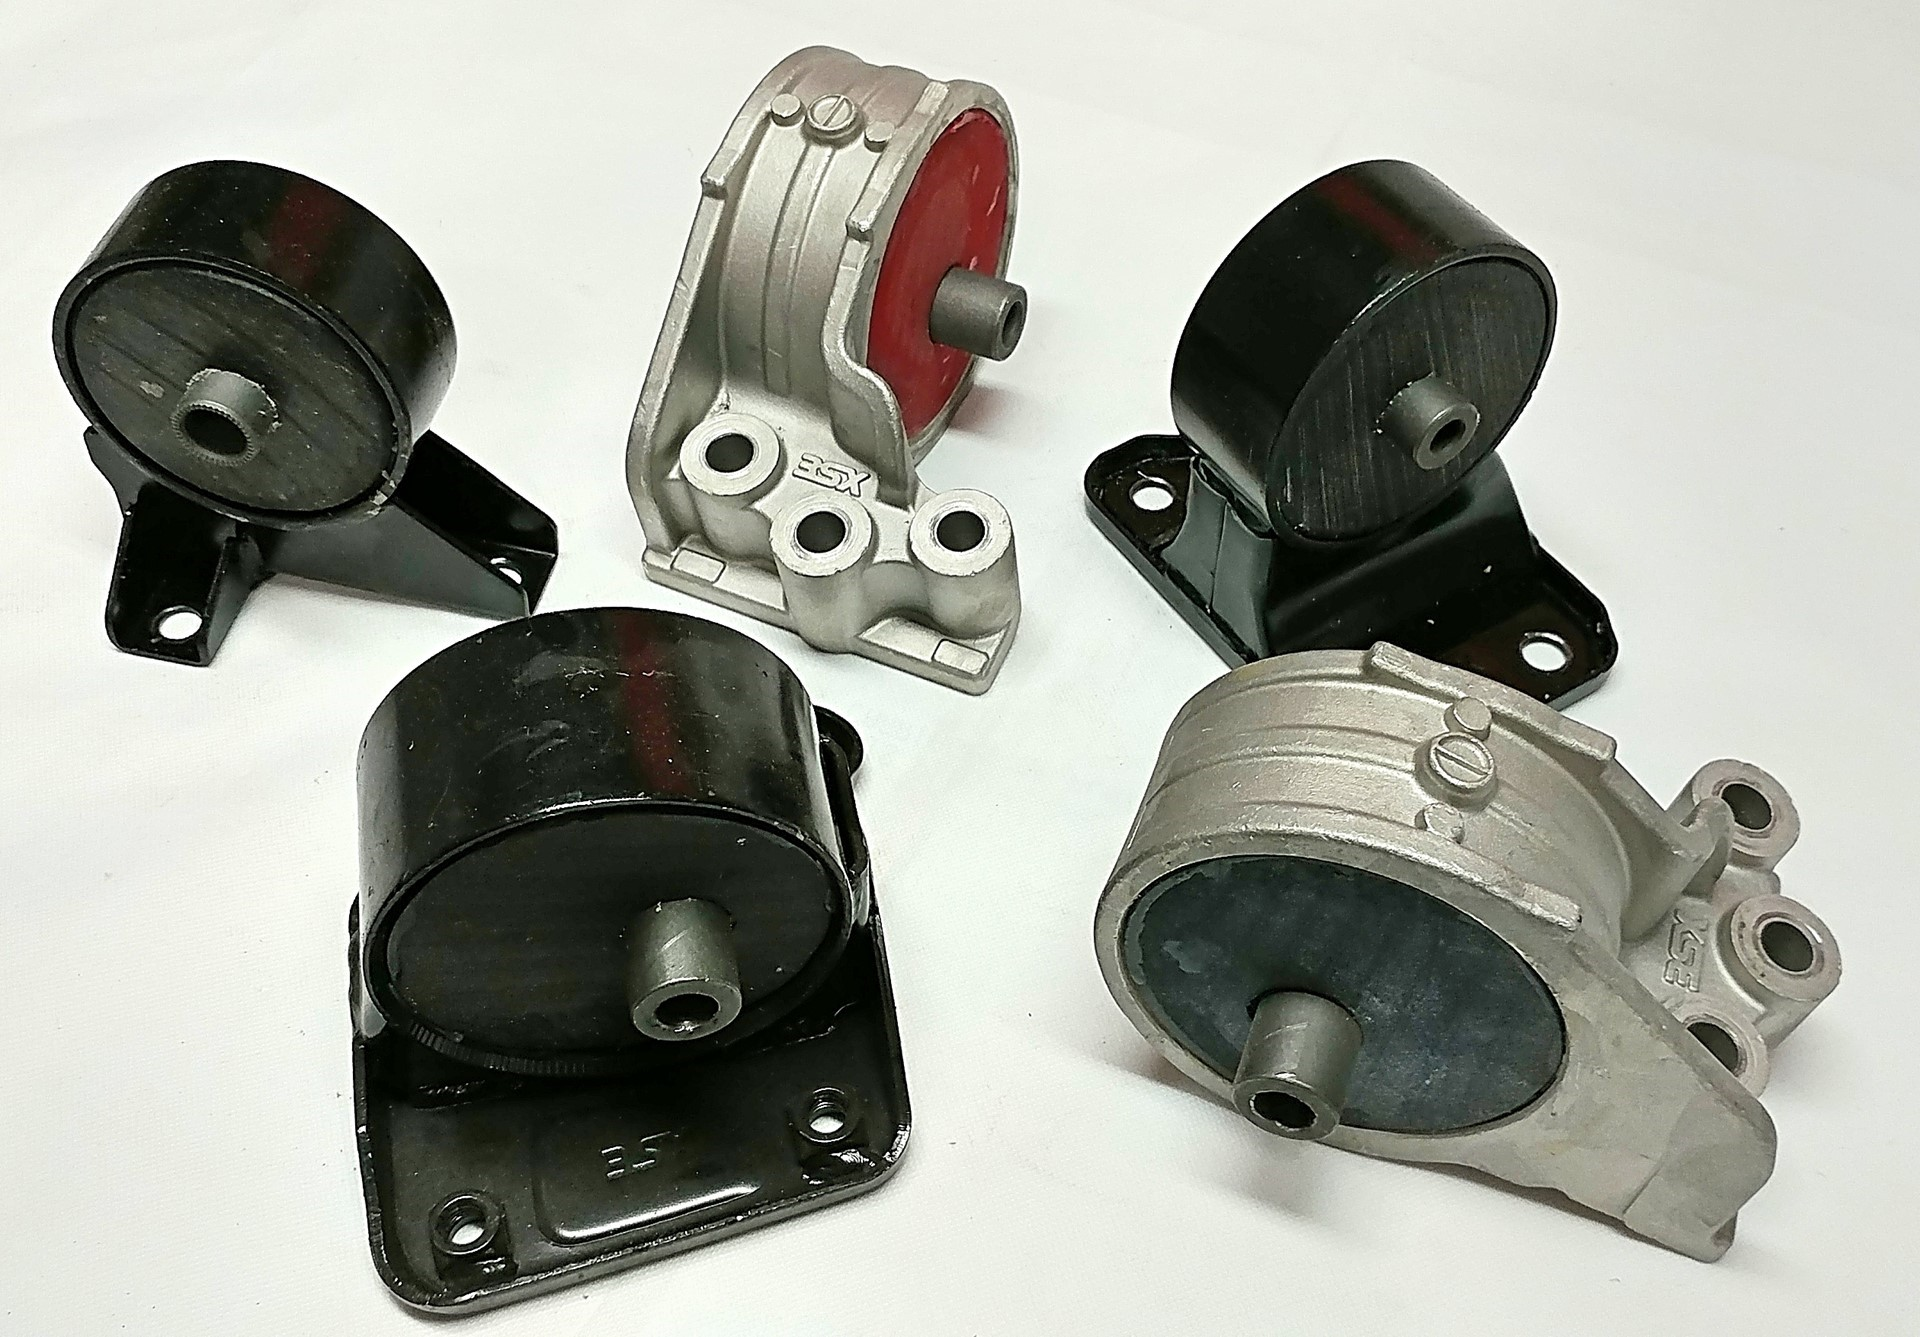 Picture of 3SX Performance Polyurethane Motor Mounts / Engine Mounts - 3000GT / Stealth (all years/models)